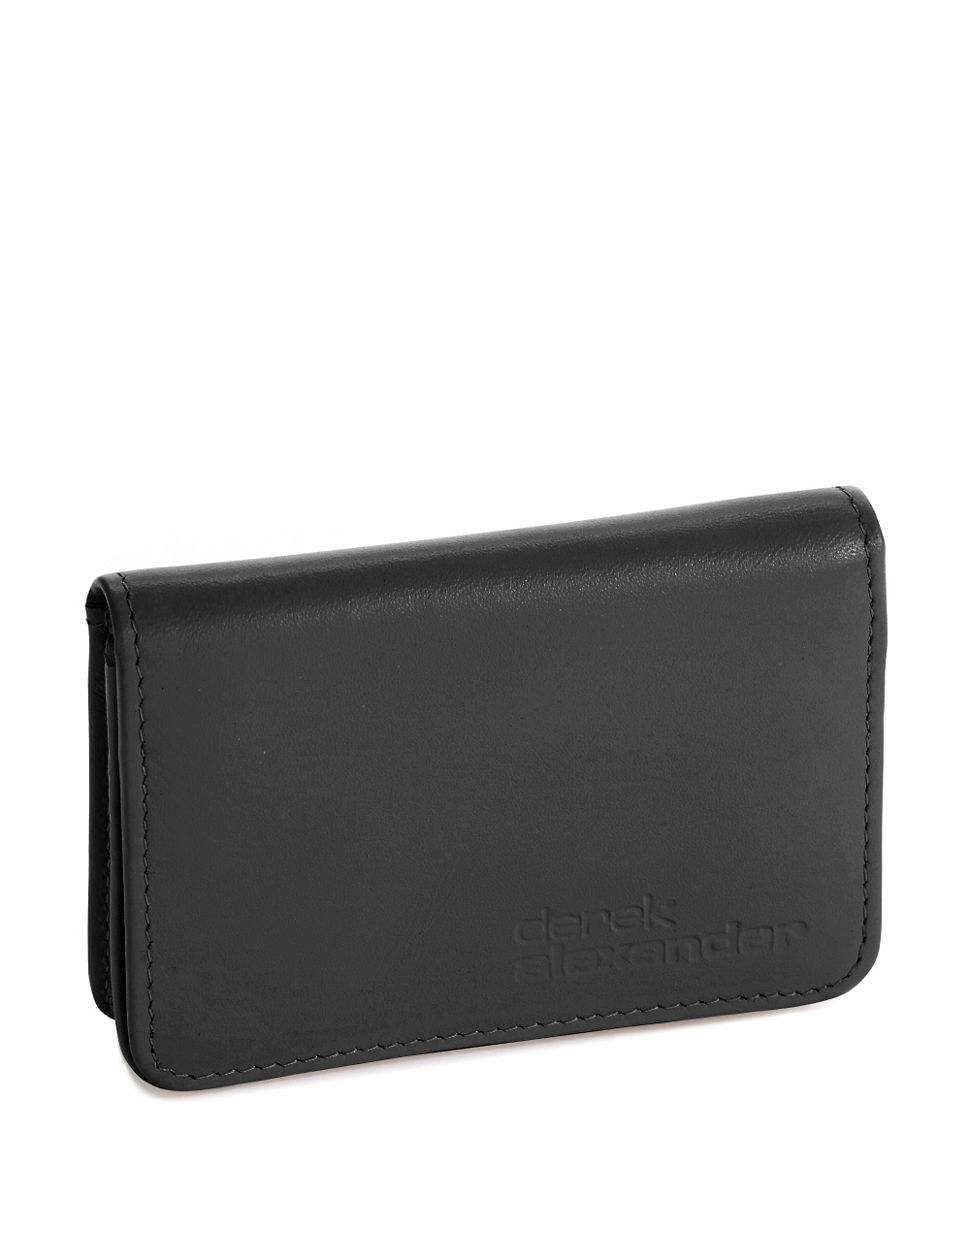 Derek alexander Simple Business Card  Credit Card Case black One Size